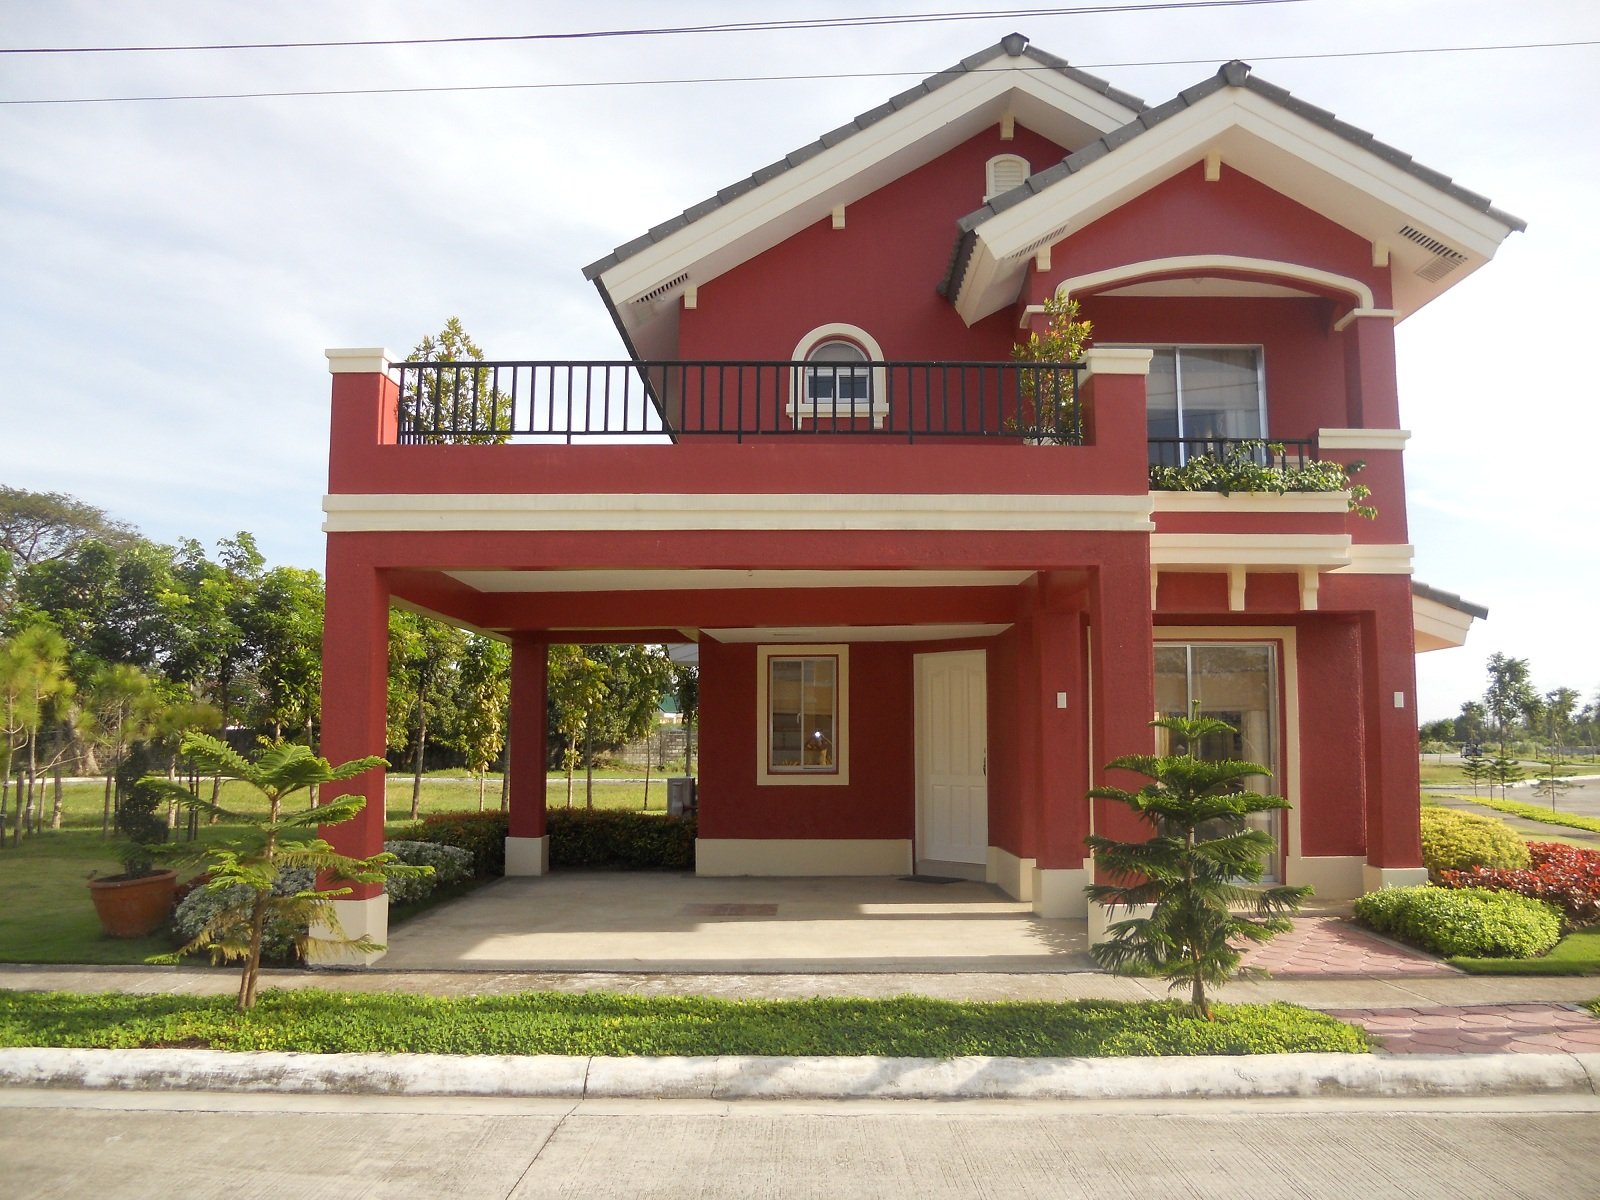 Althea Or Ruby Model House Of Savannah Glades Iloilo By Camella Homes Erecre Group Realty Design And Construction